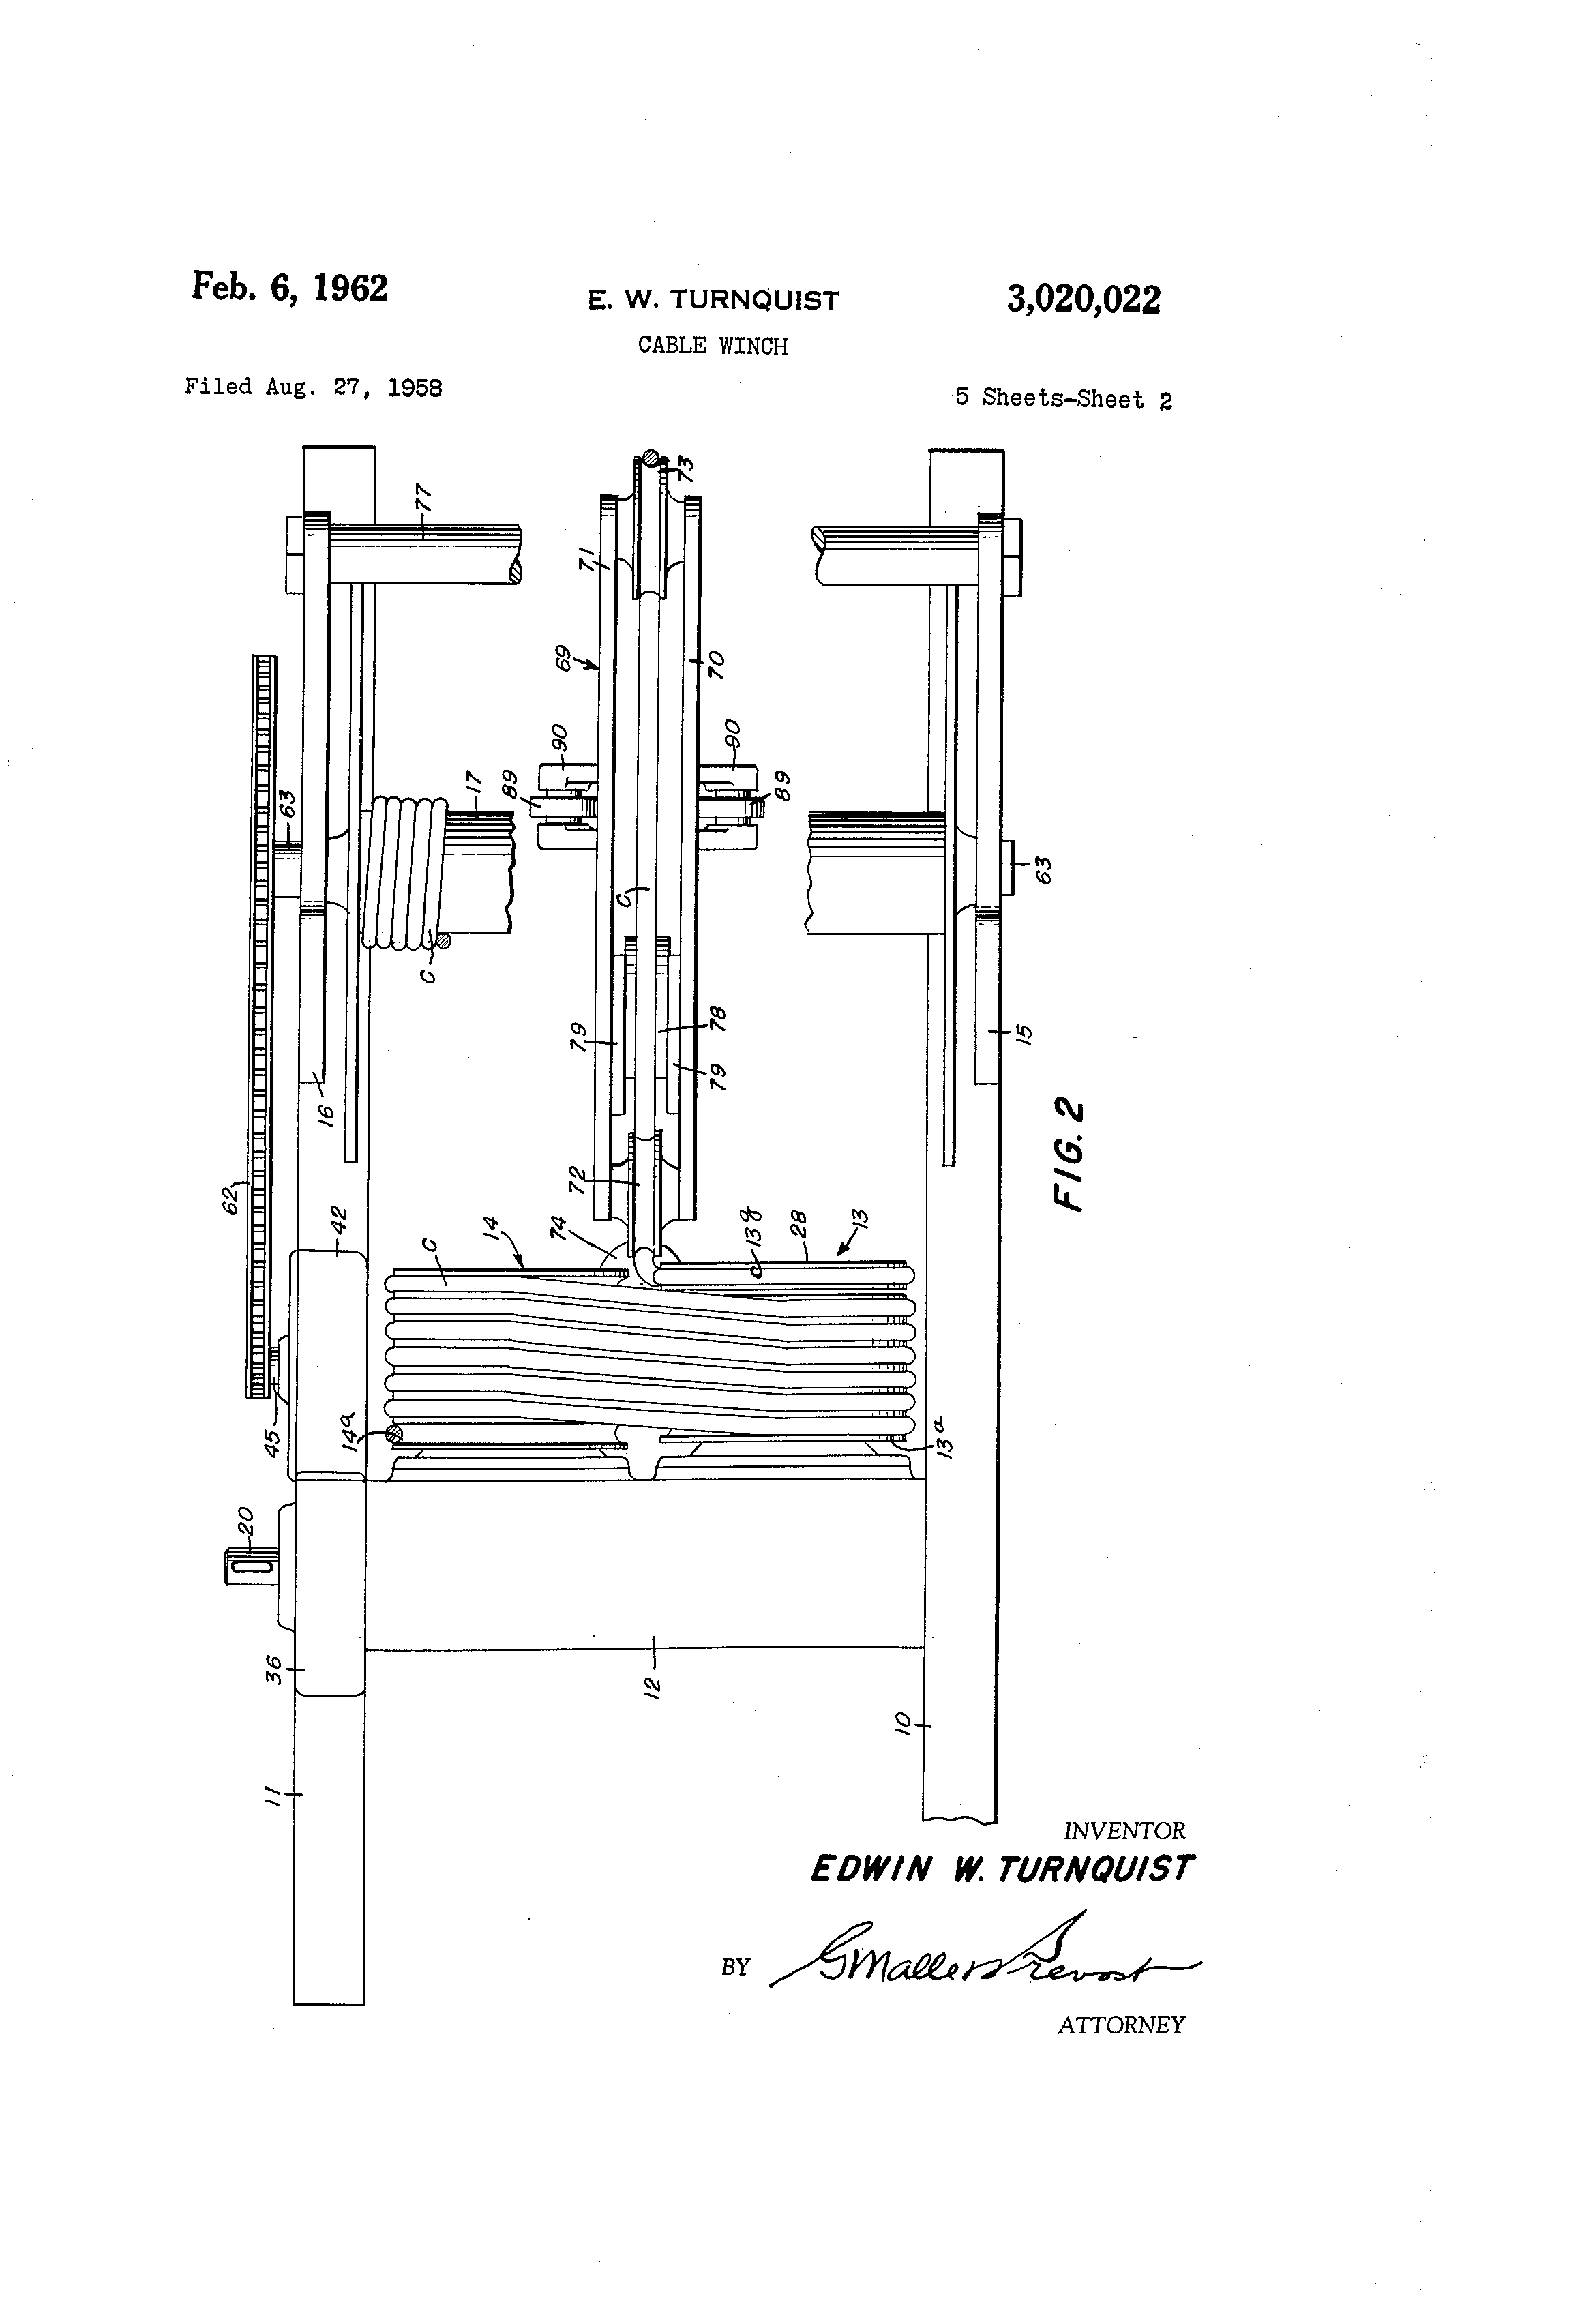 braden electric winch wiring diagram wiring diagram and military winch